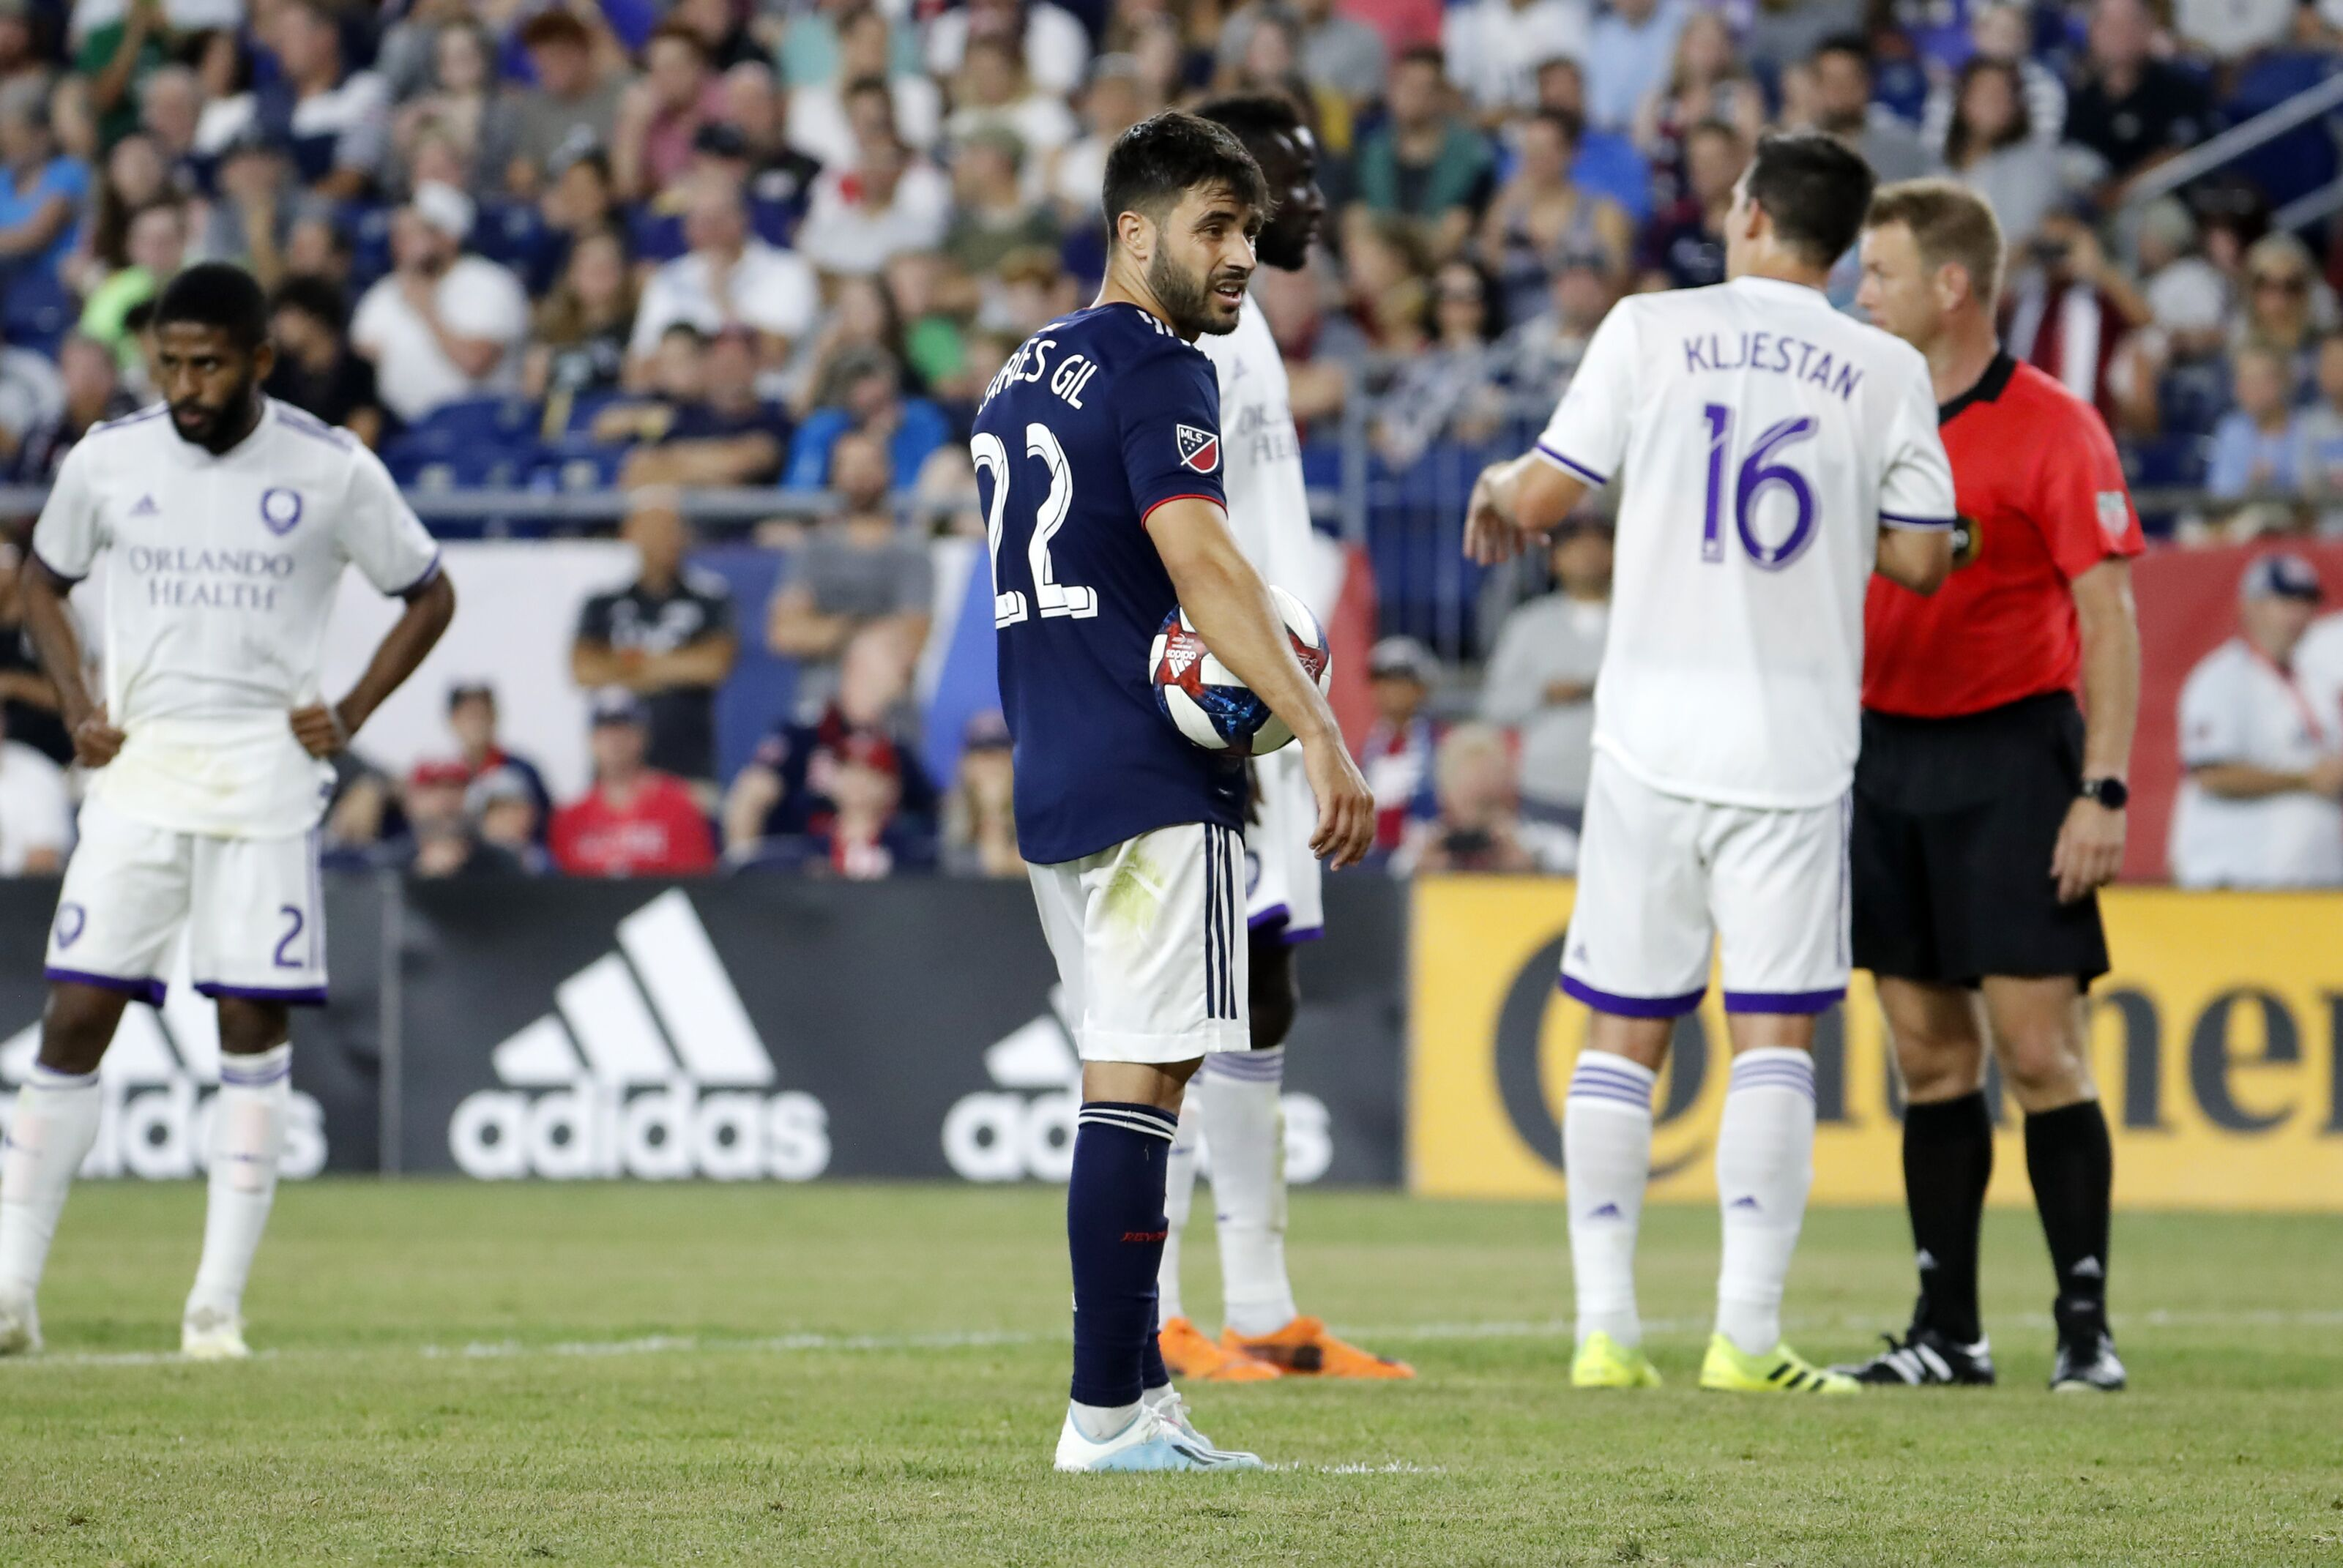 Orlando City Vs New England Revolution: 3 things we learned  Nani carries Lions